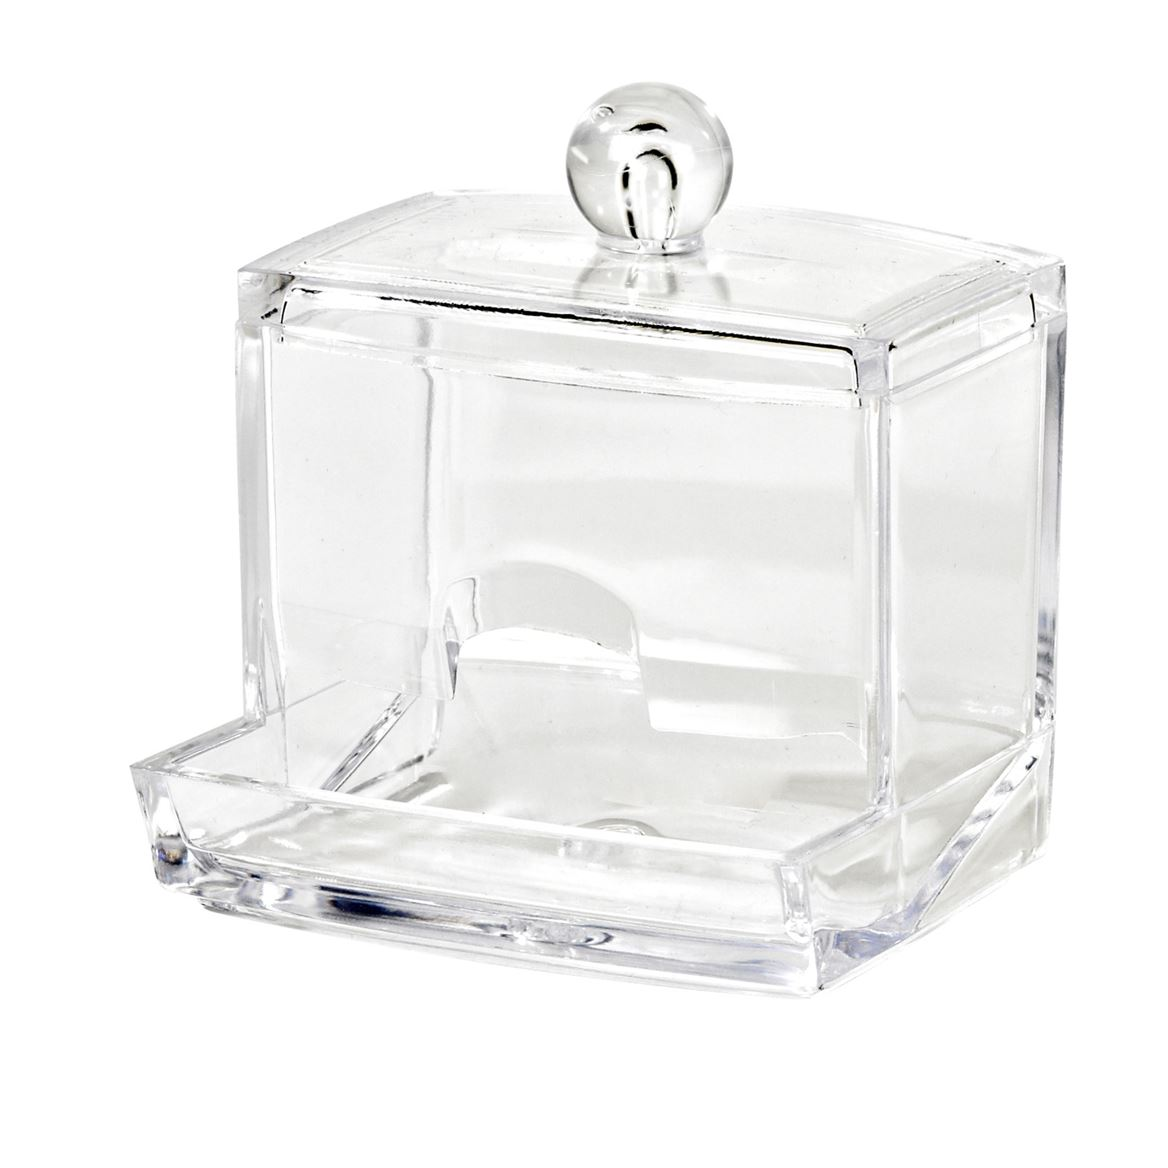 COSMETIC Porte-cotons-tiges transparent H 10 x Larg. 8 x P 8,8 cm_cosmetic-porte-cotons-tiges-transparent-h-10-x-larg--8-x-p-8,8-cm